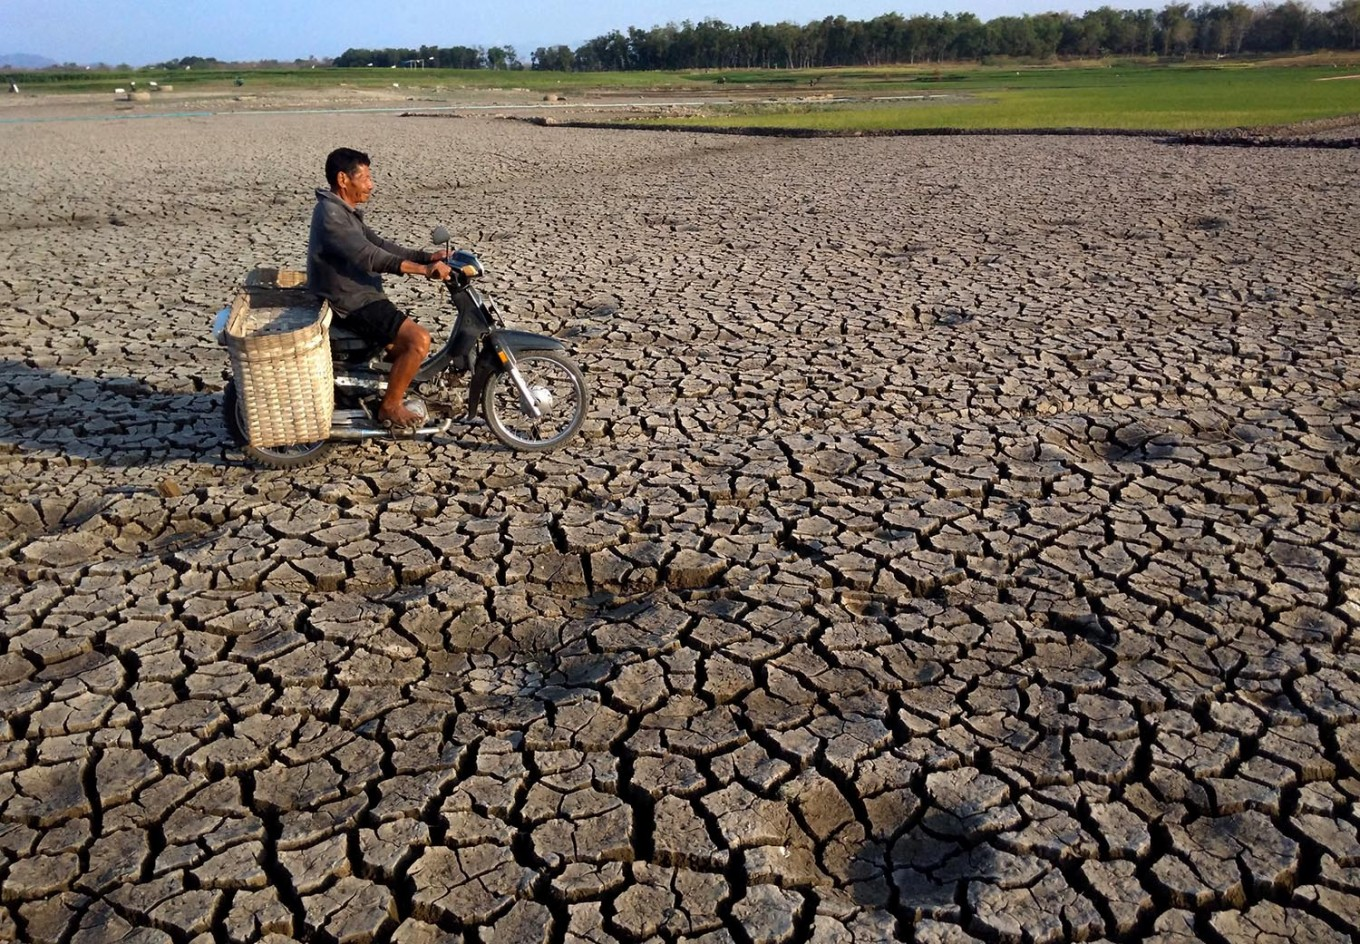 Thousands affected by drought in Central Java without permanent solution